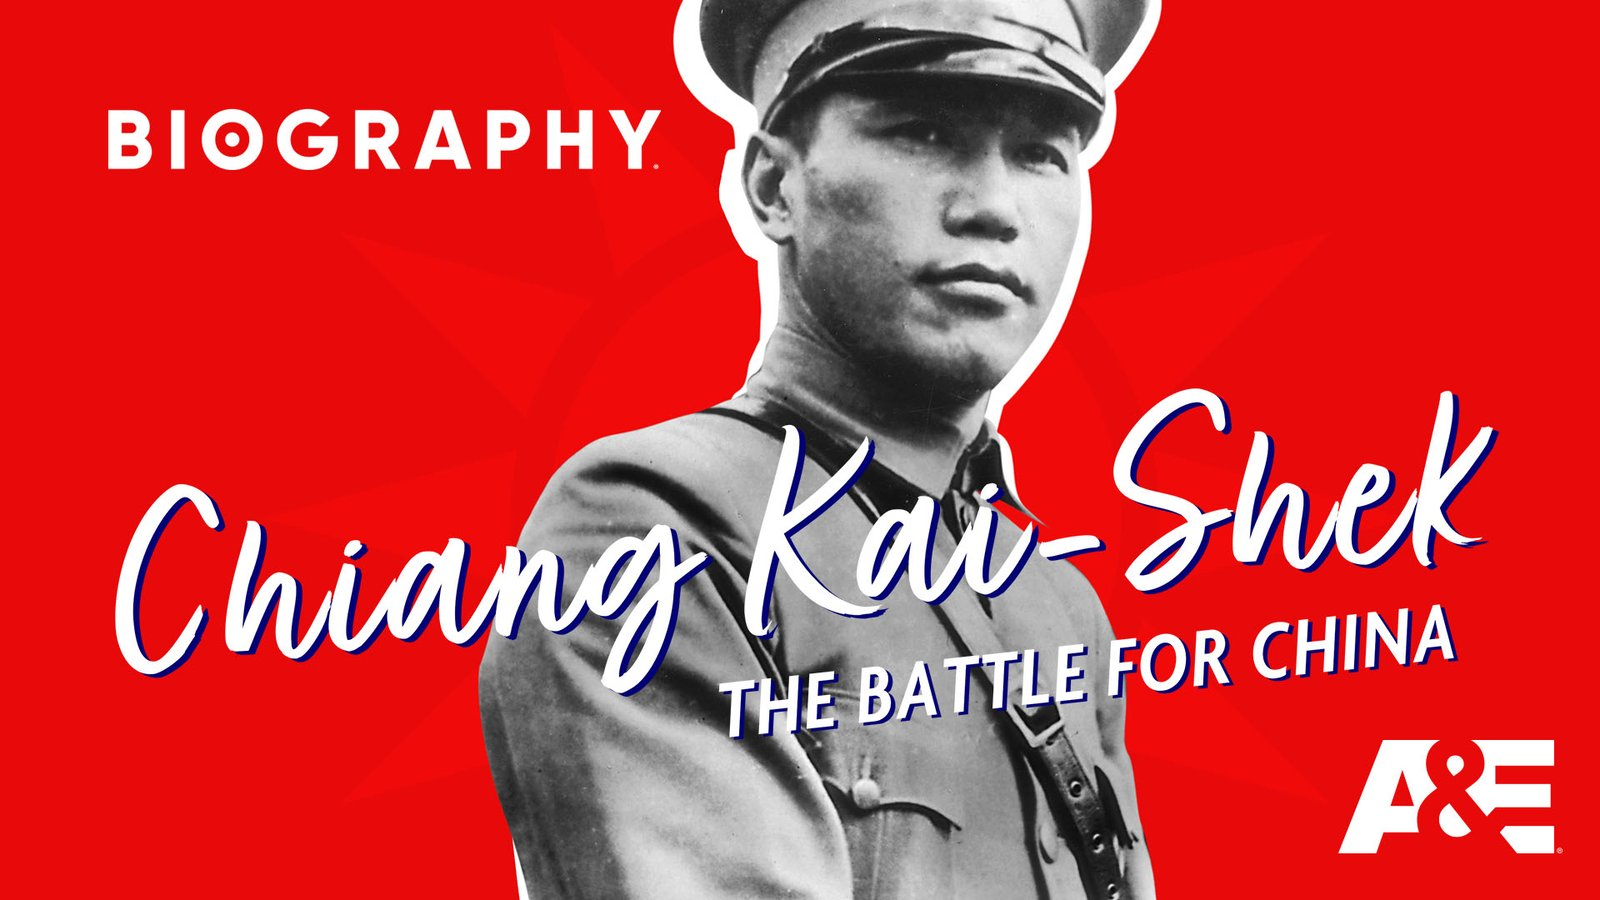 Chiang Kai-Shek: The Battle for China